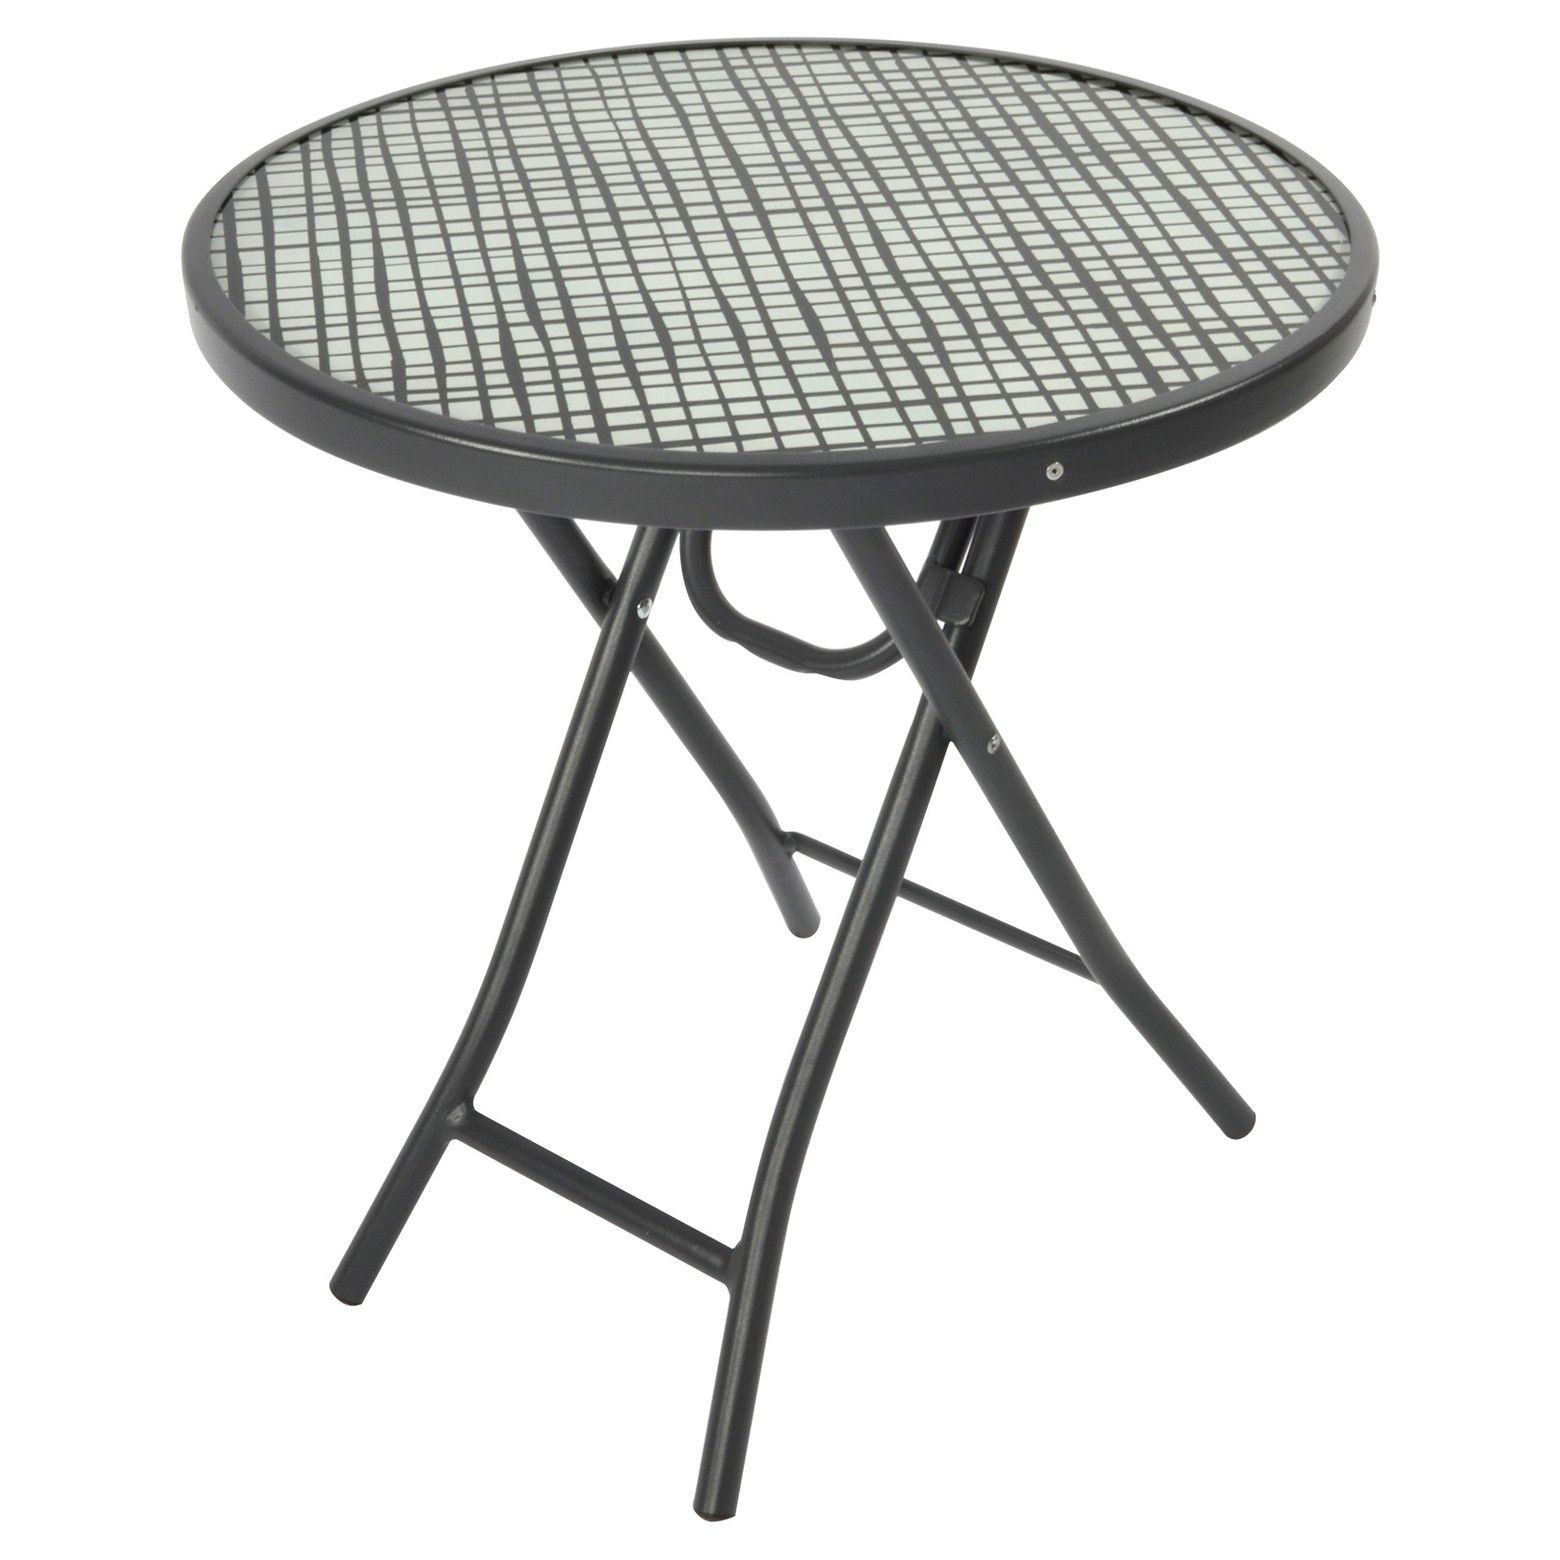 bistro round folding accent table black white pattern room essentials bunnings garden seat with shelf tall glass lamps oak dining chairs mirrored drawer pottery barn office chair